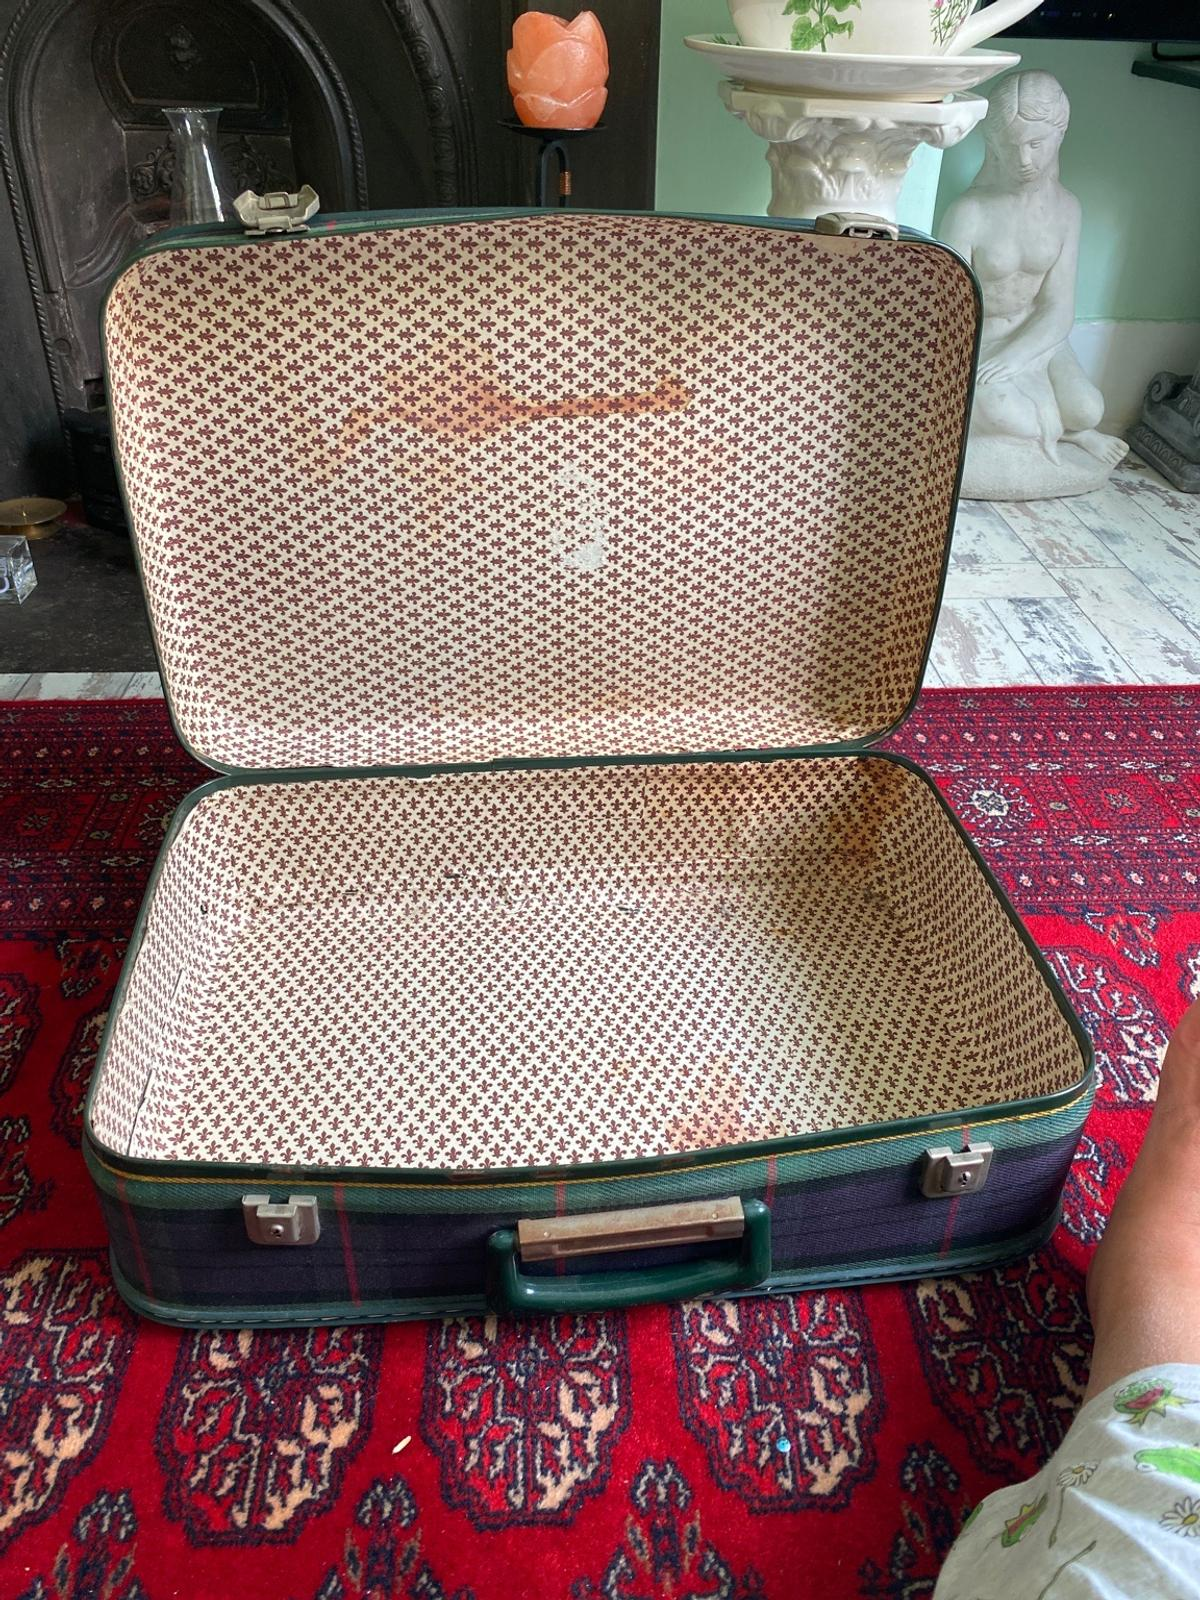 Vintage suitcase in check size 20 inches/ 51 CM / length/ width is 13 / inches/ 33 CM / depth is 6 / inches/ 15 CM I have no keys for it but it is very easy to find one.